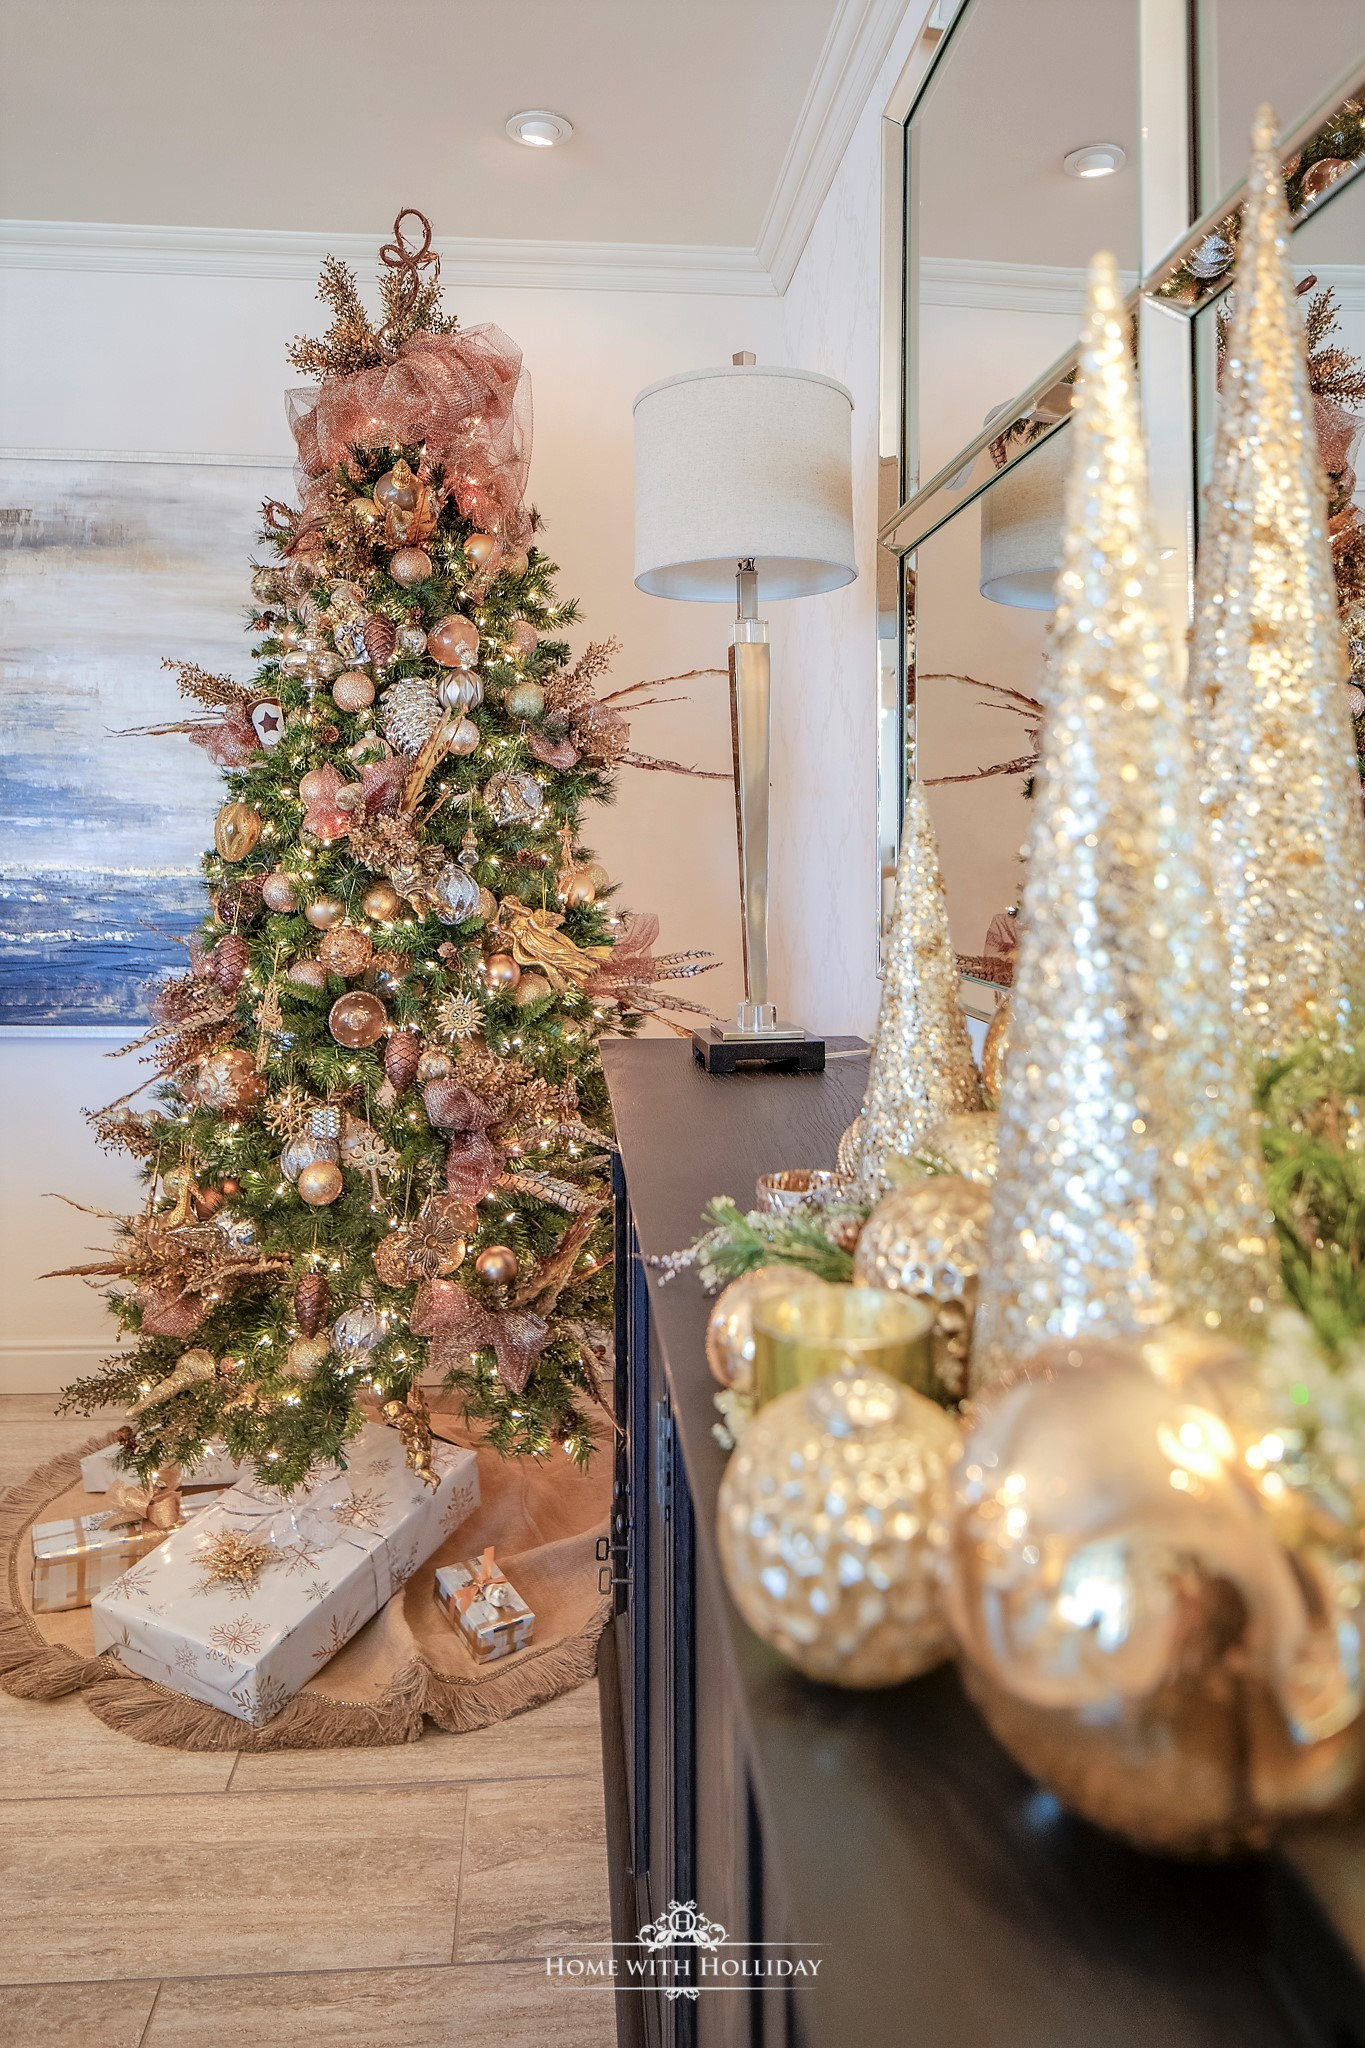 My Christmas Home Tour - Mixed Metallic Christmas Tree - Home with Holliday